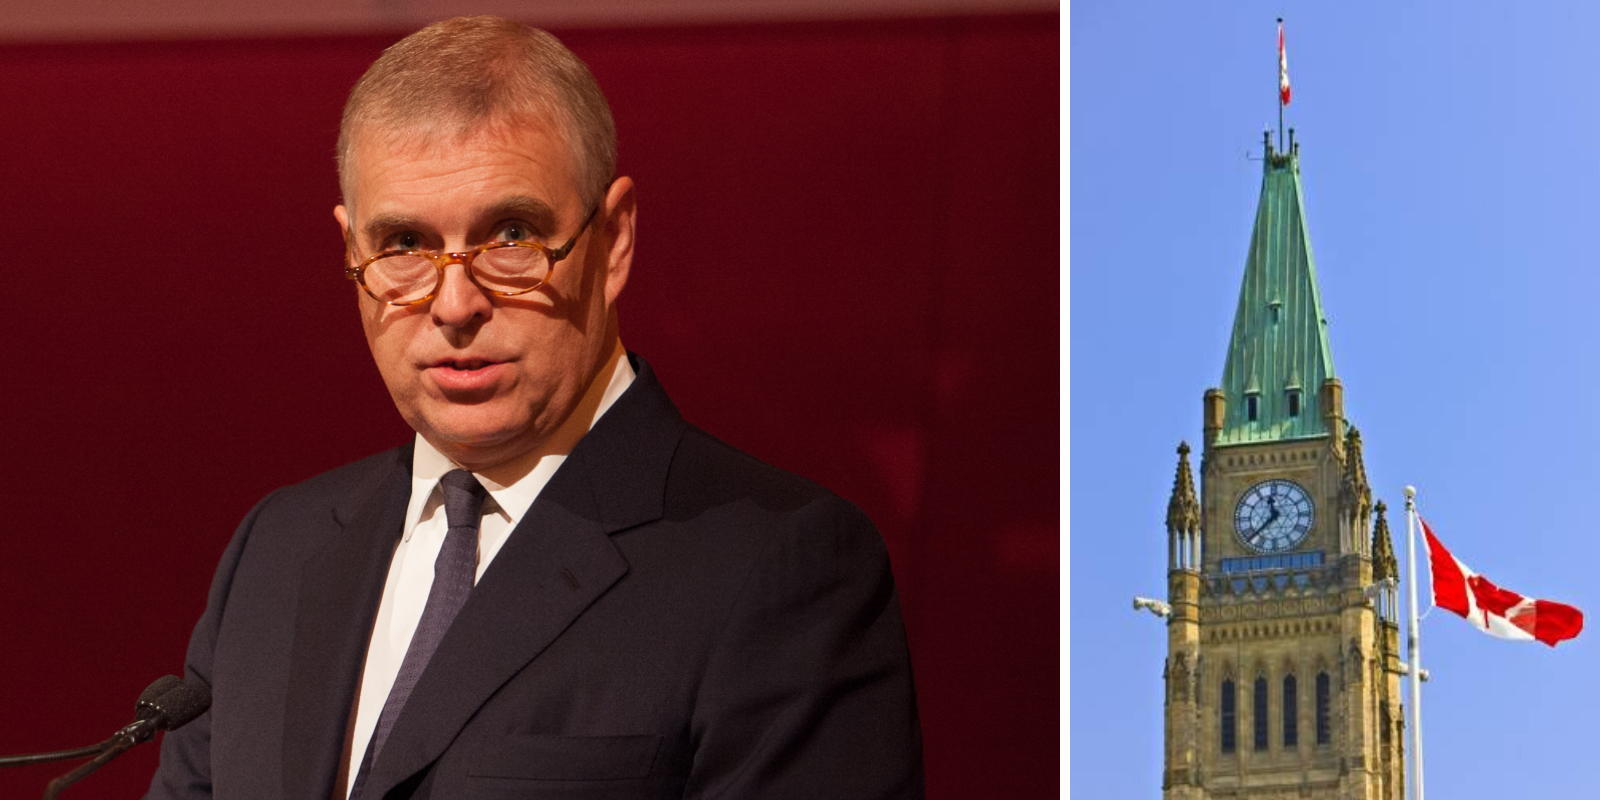 PRINCE ANDREW: Canadian orgs won't say if they'll cut ties with disgraced Royal